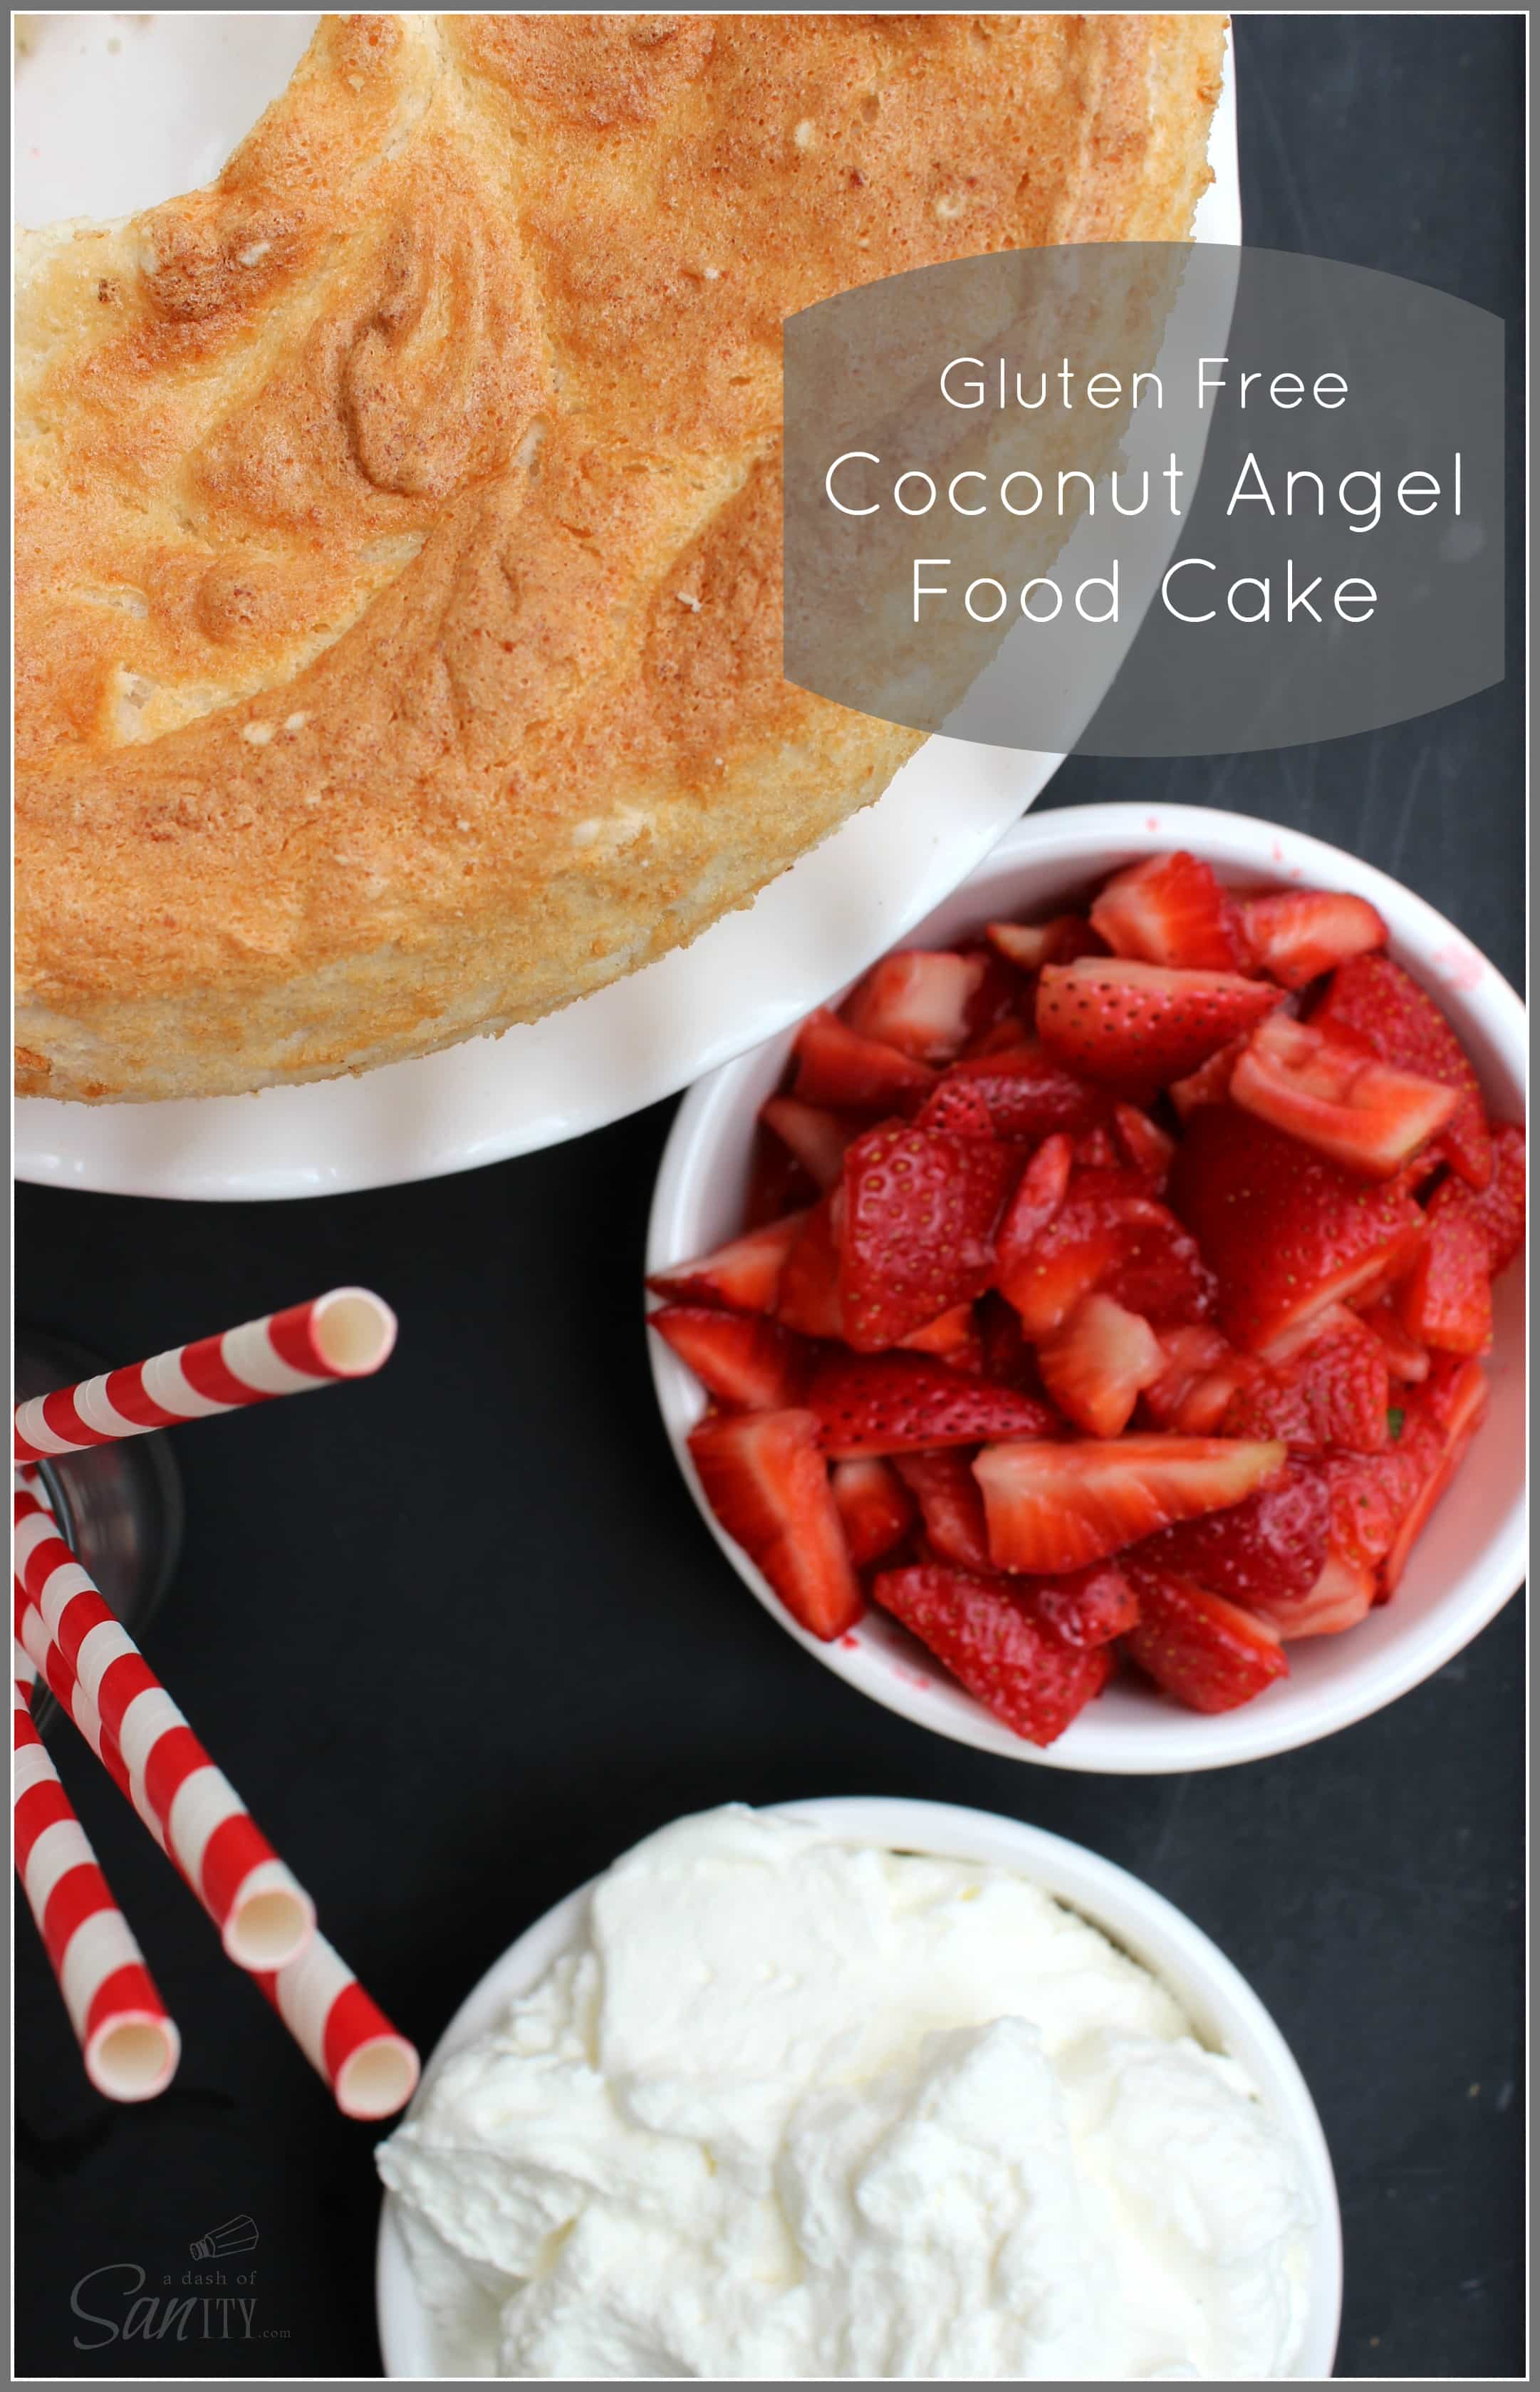 Gluten Free Coconut Angel Food Cake